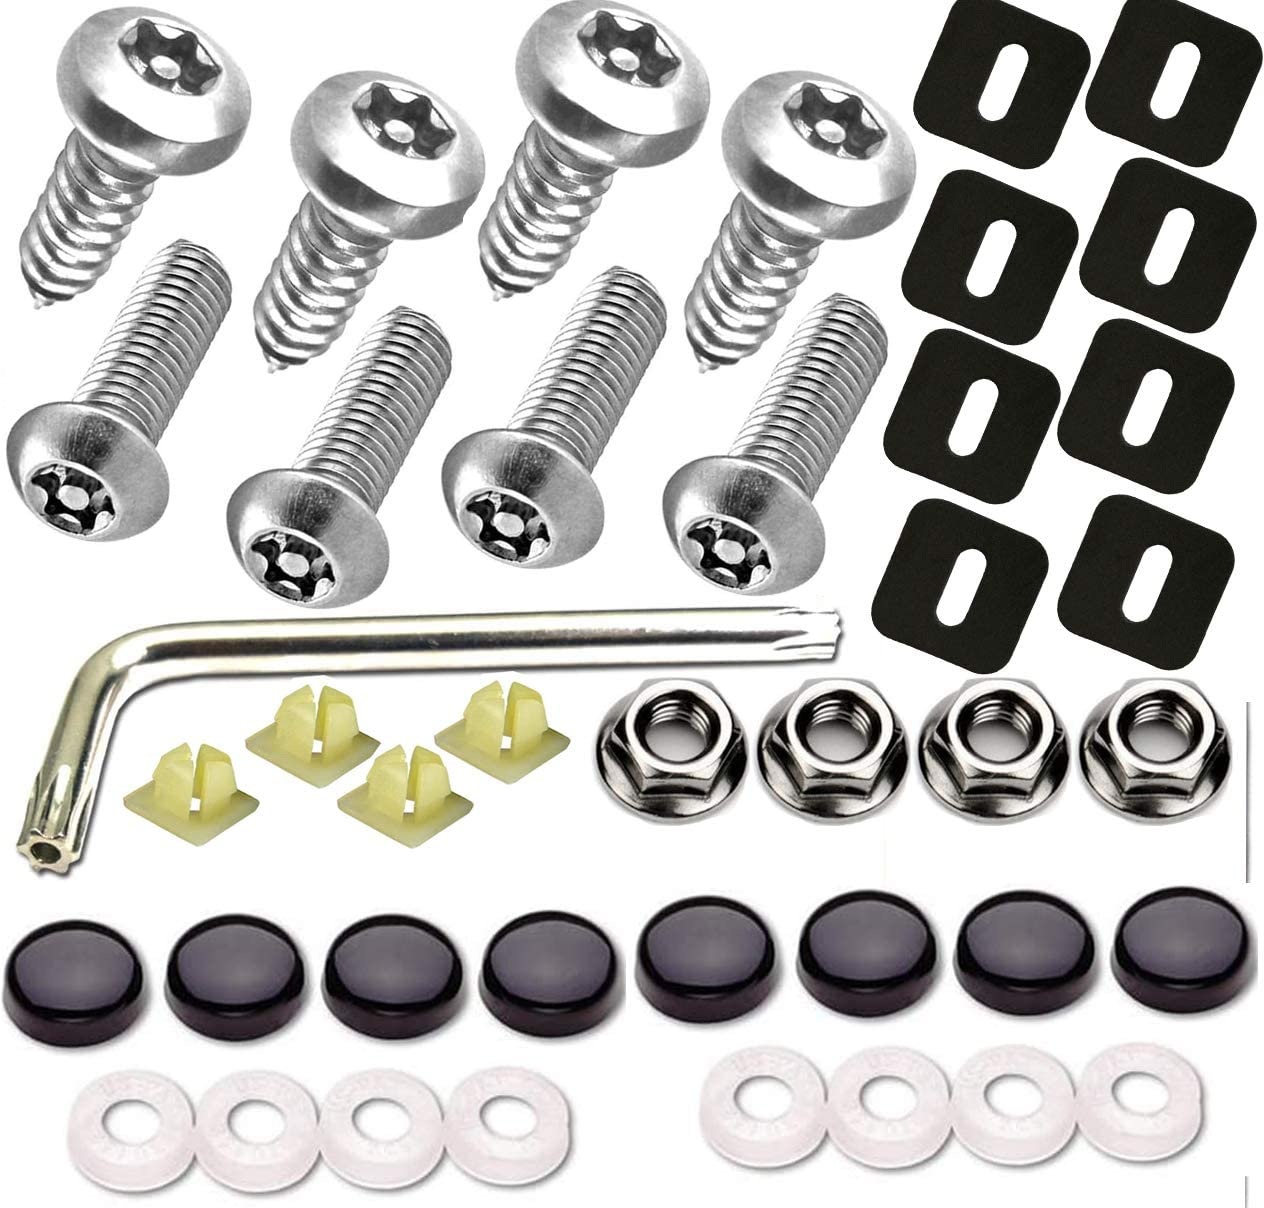 Self-Tapping Fastener Kit Give Tamper-Resistant Mirror Polished White Chrome License Plate Screw Covers-License Tag Hardware Bolt Anti-Theft License Plate Screws-Stainless Steel Machine